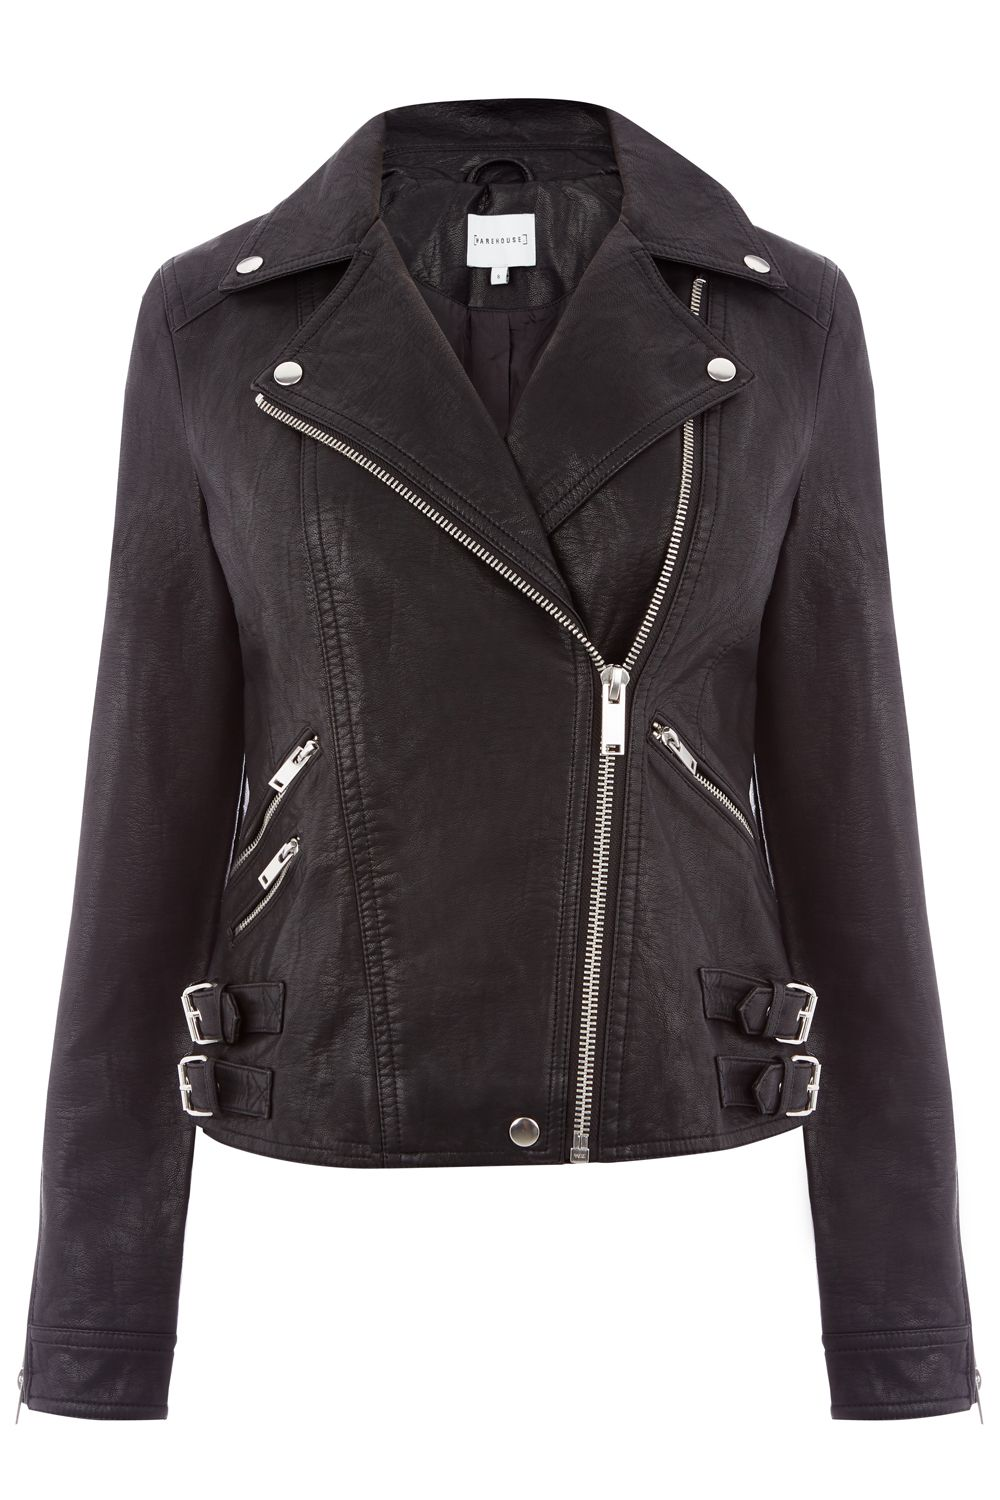 Warehouse Faux Leather Biker, Black